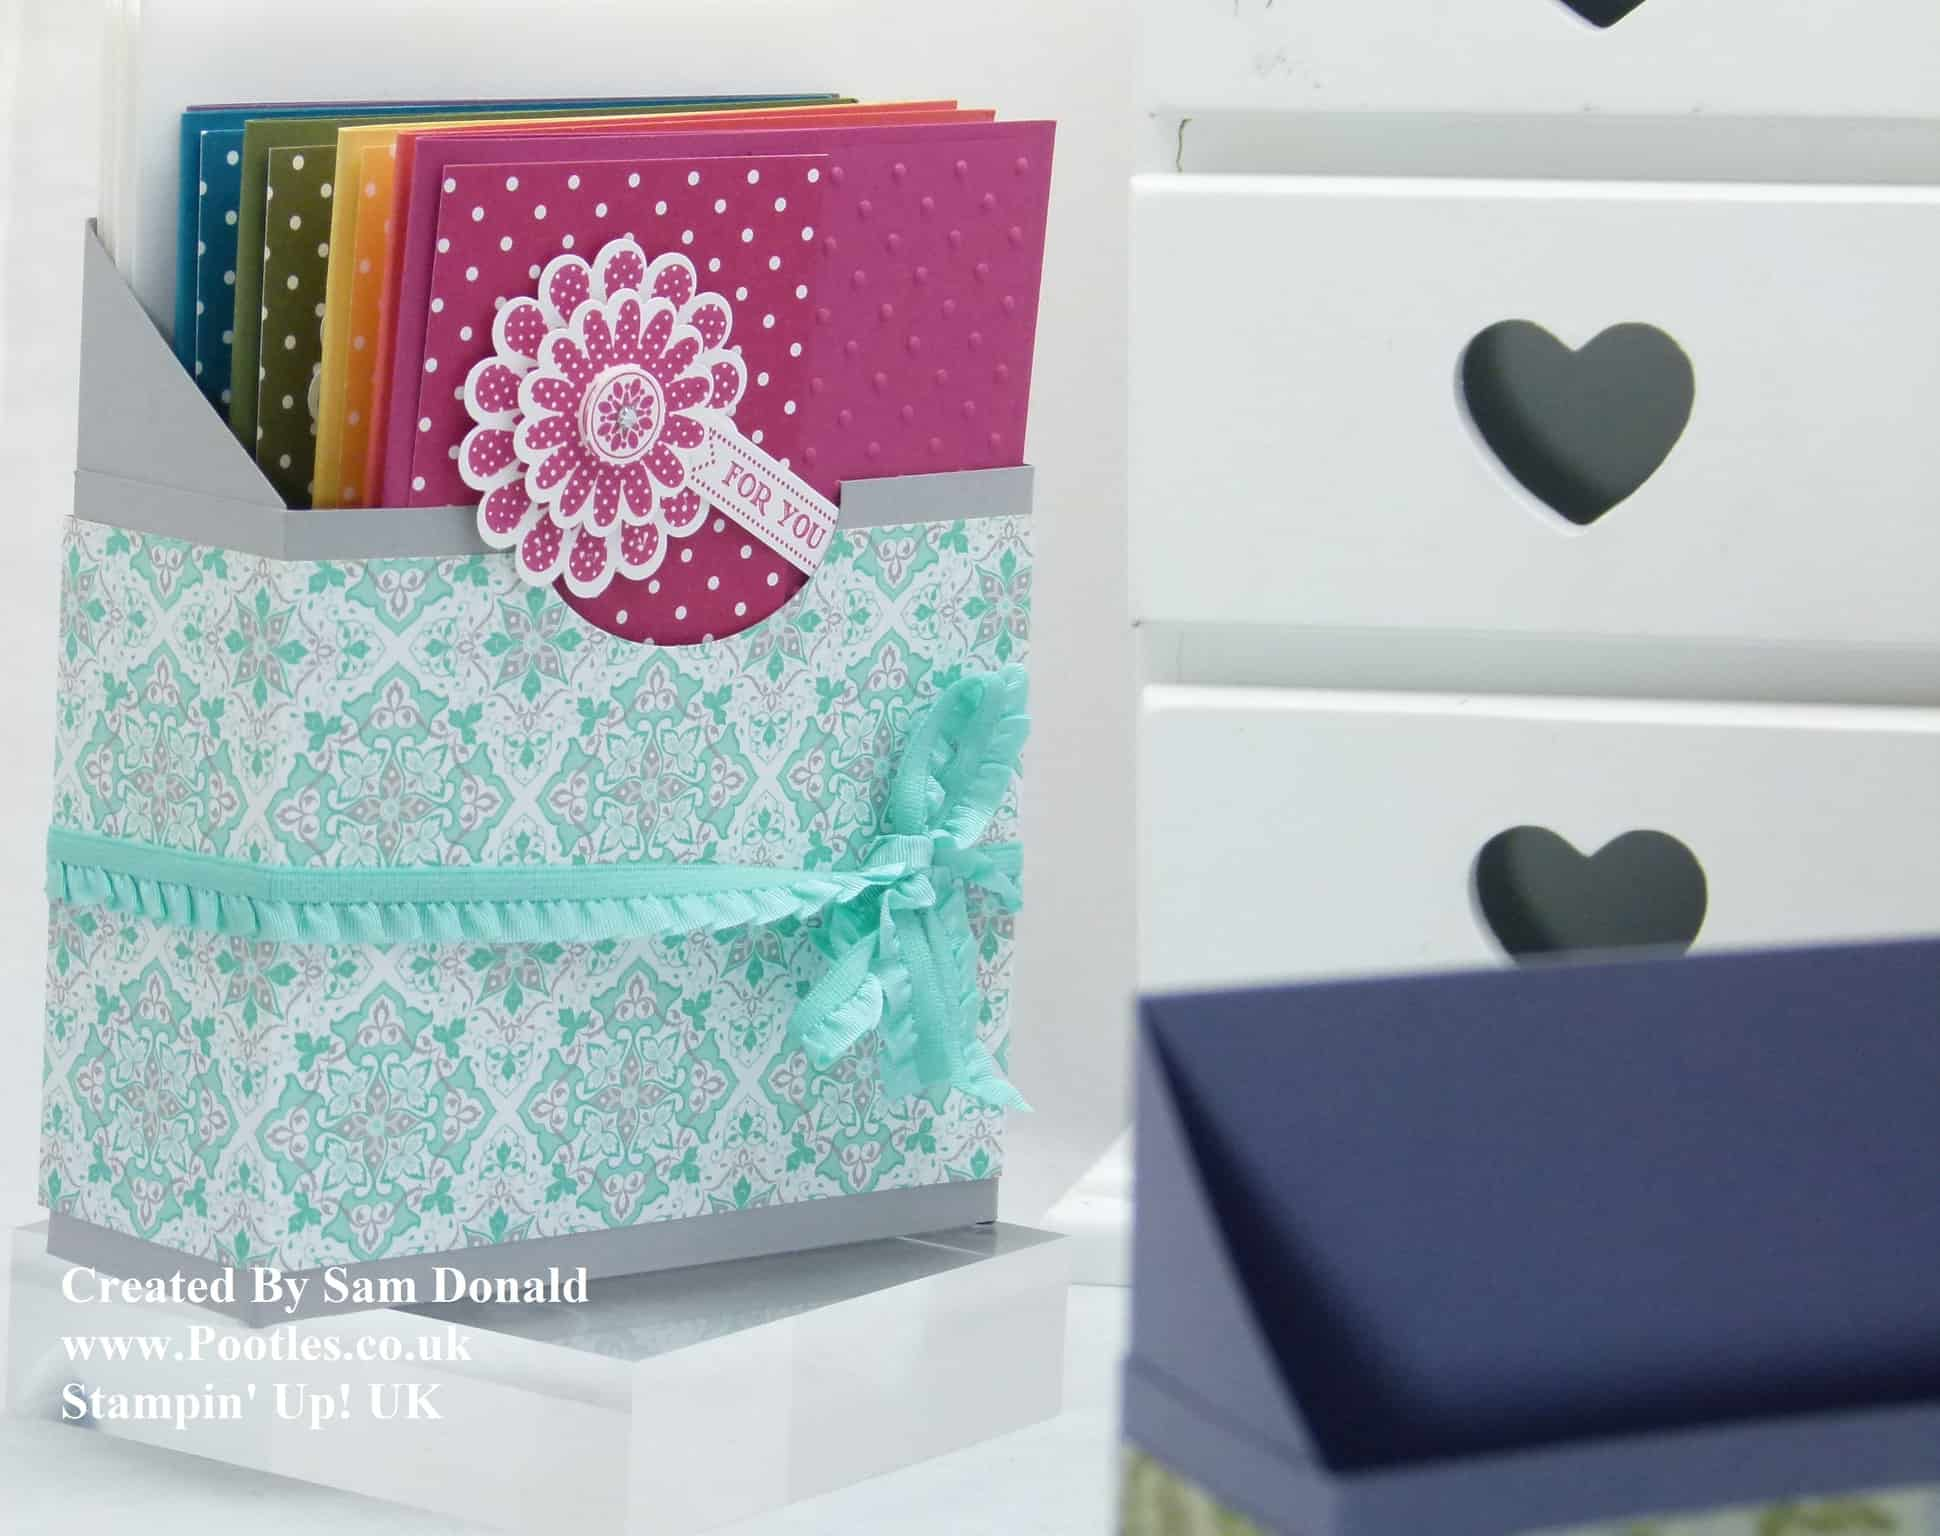 Pootles Stampin Up UK Card Holder Box Tutorial 3